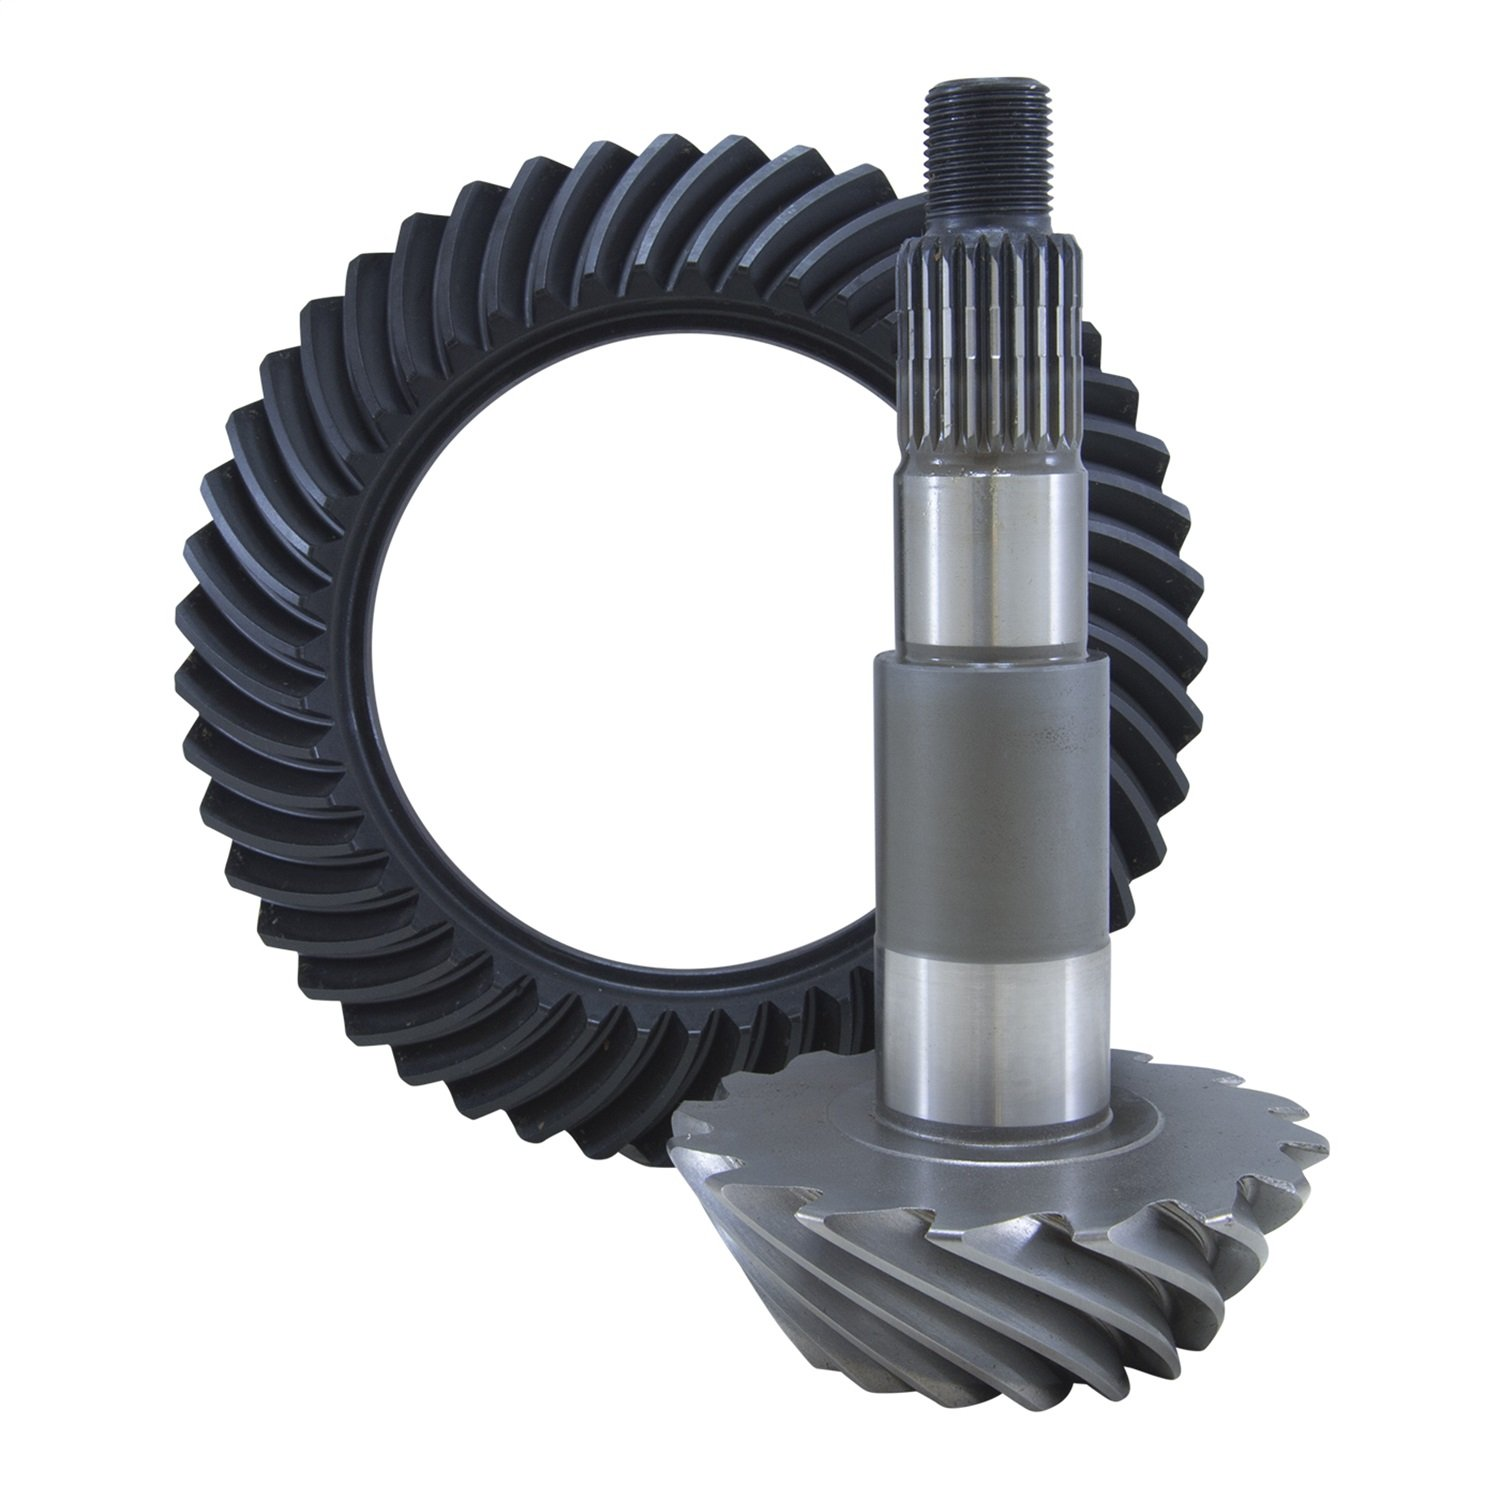 YG GM7.2-373R High Performance Ring /& Pinion Gear Set for GM 7.2 IFS Differential Yukon Gear /& Axle